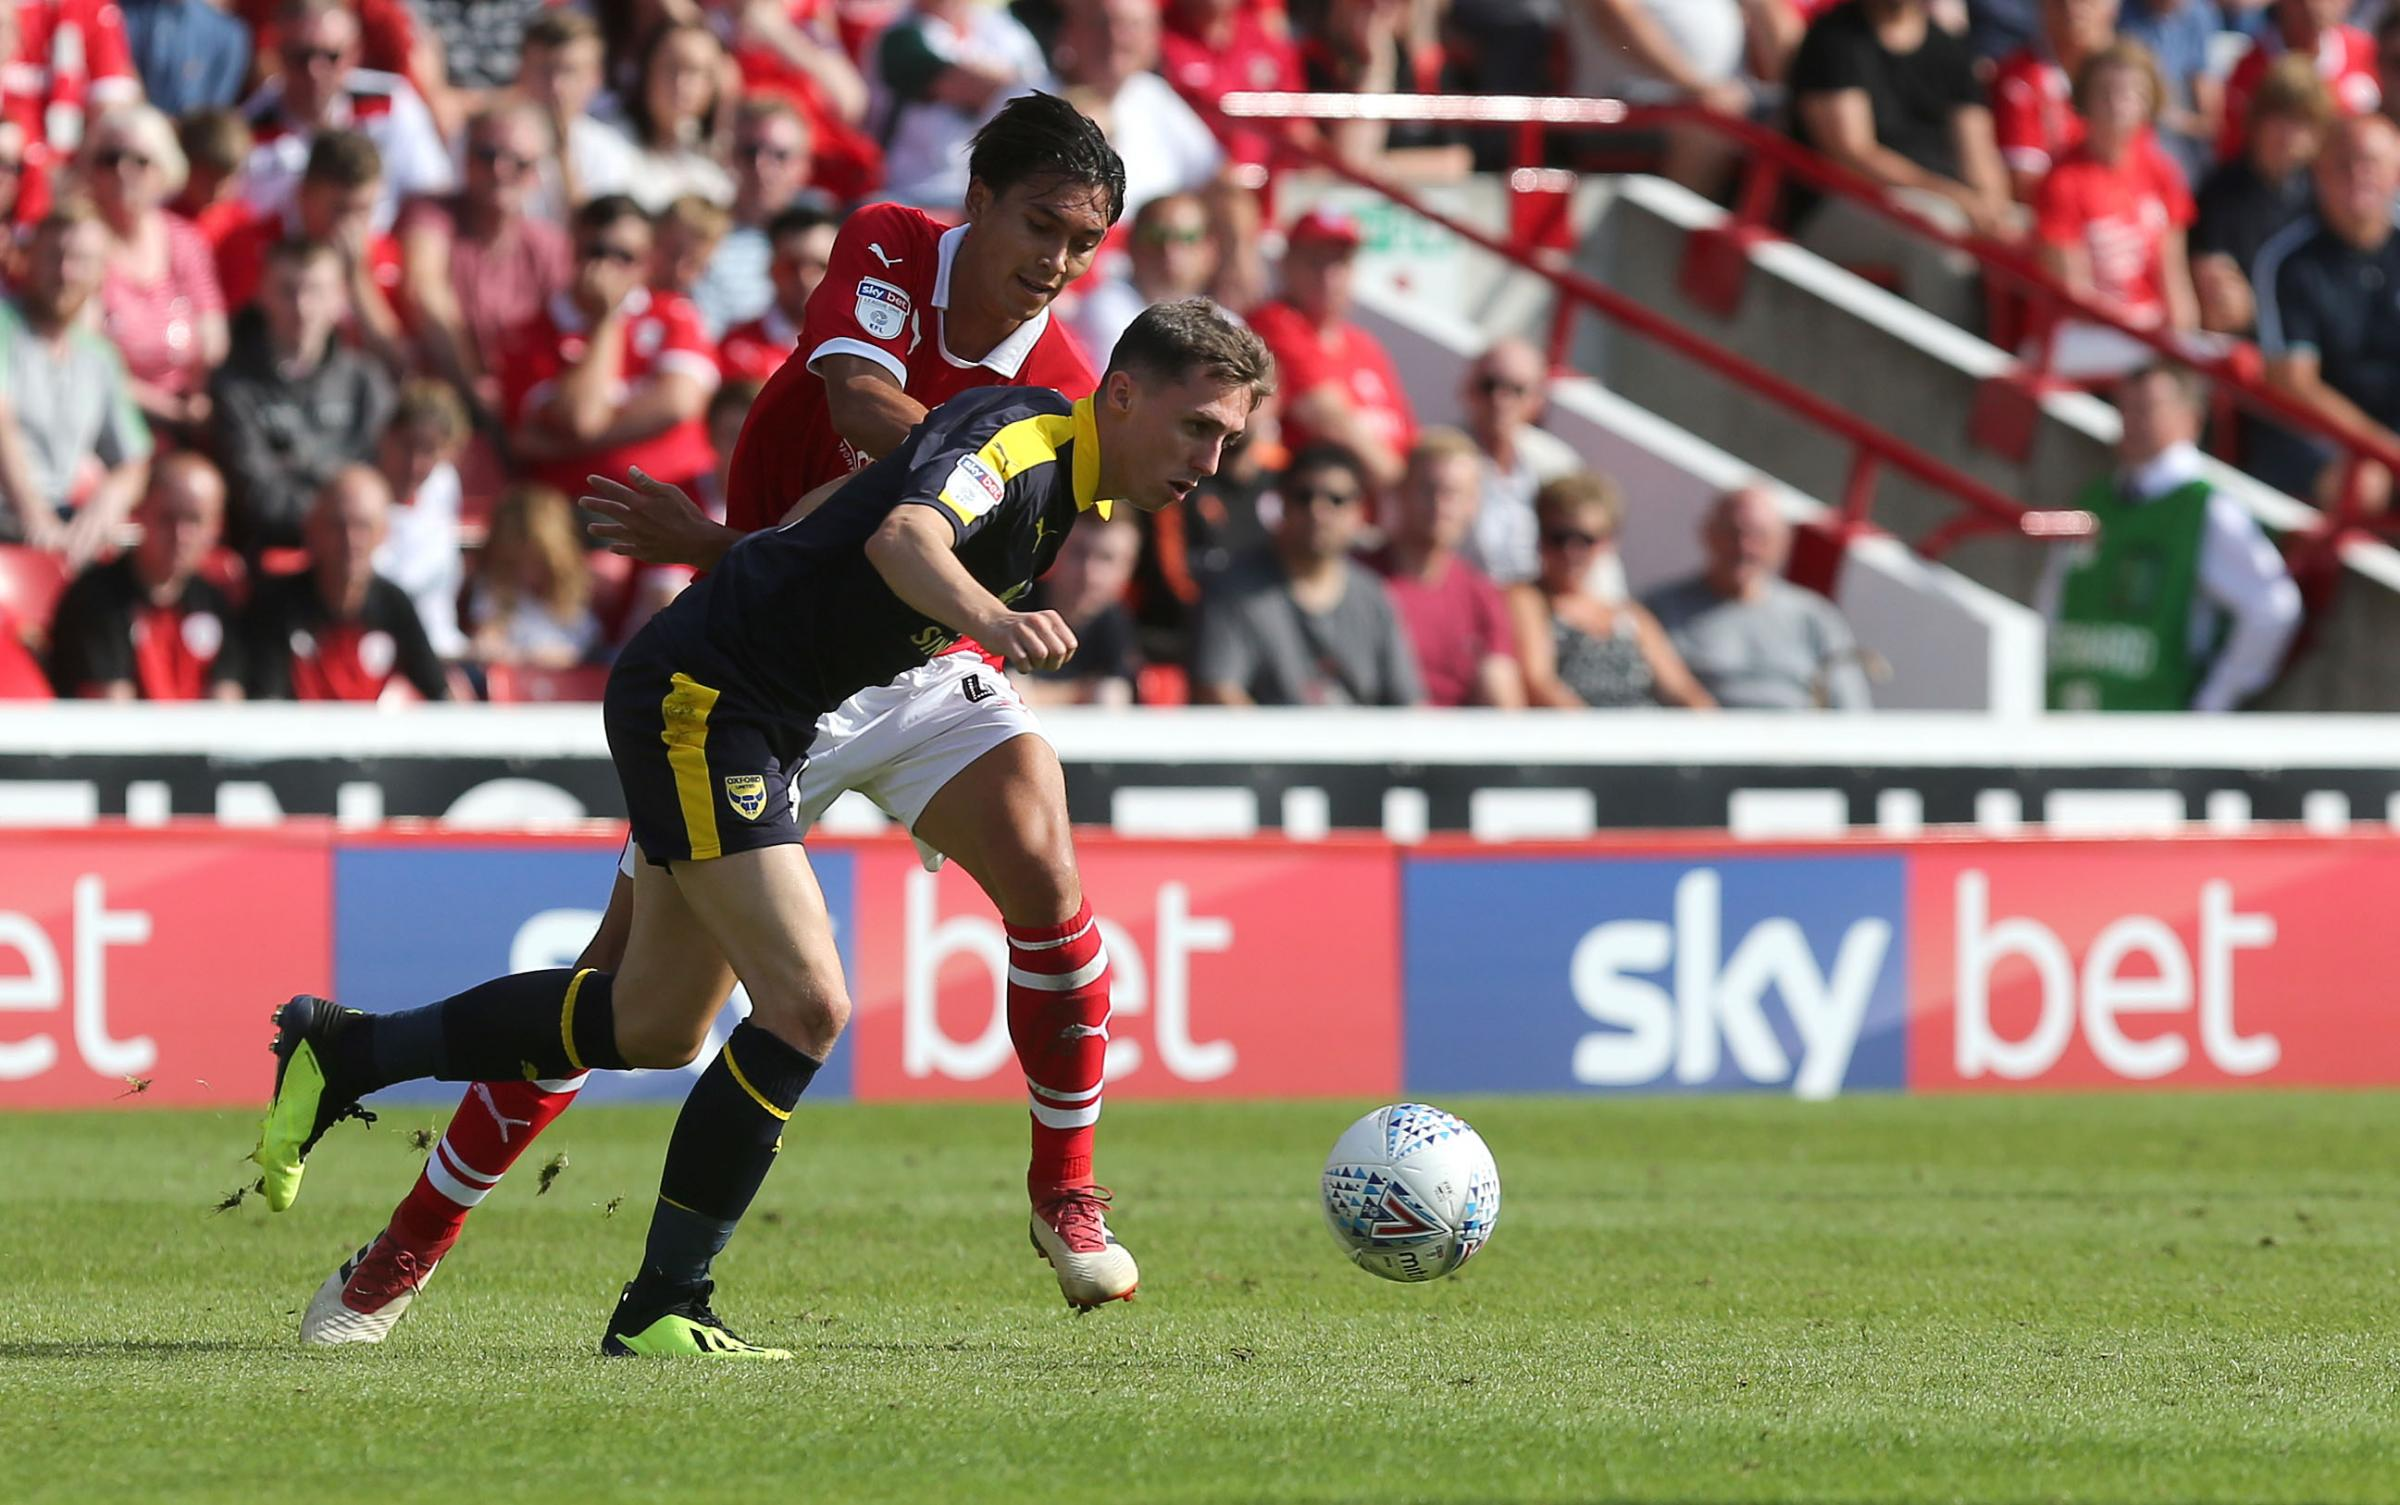 Oxford United visited Barnsley on the opening day of this season  Picture: Richard Parkes